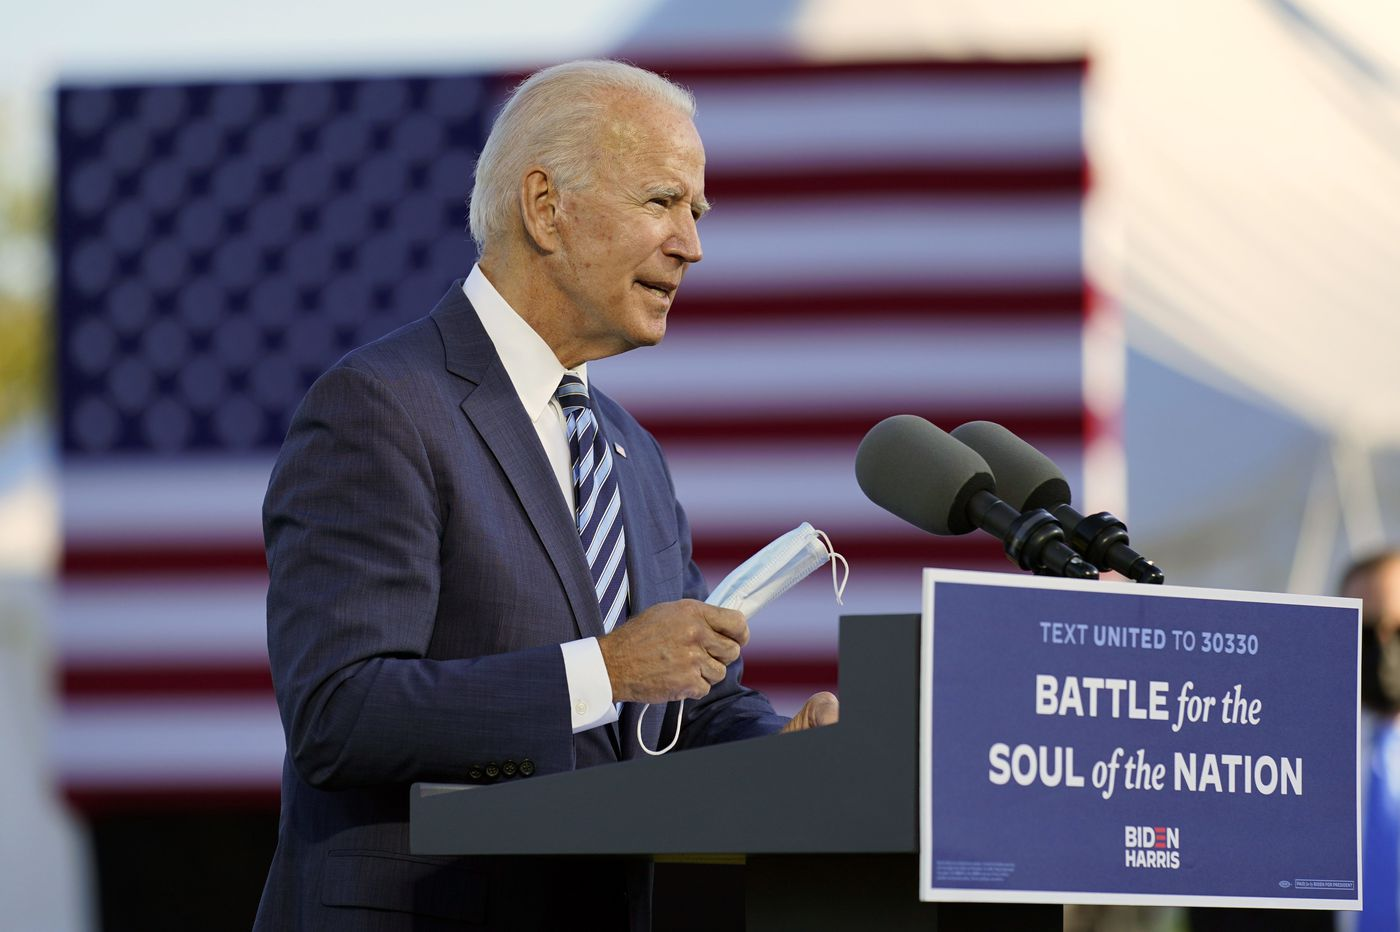 Biden in Gettysburg: 'Once again, we are a house divided'